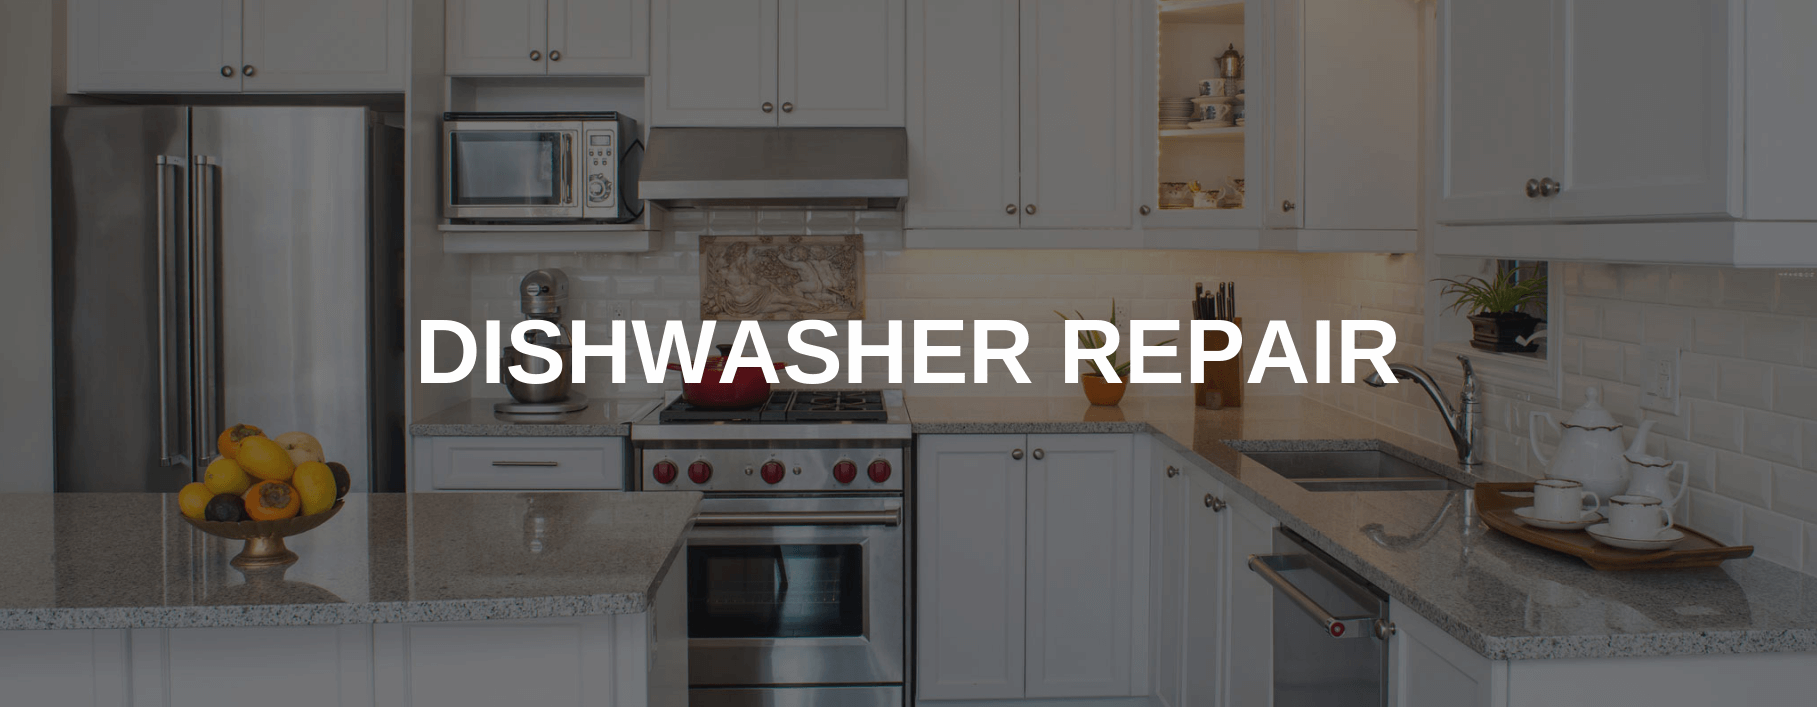 dishwasher repair pride